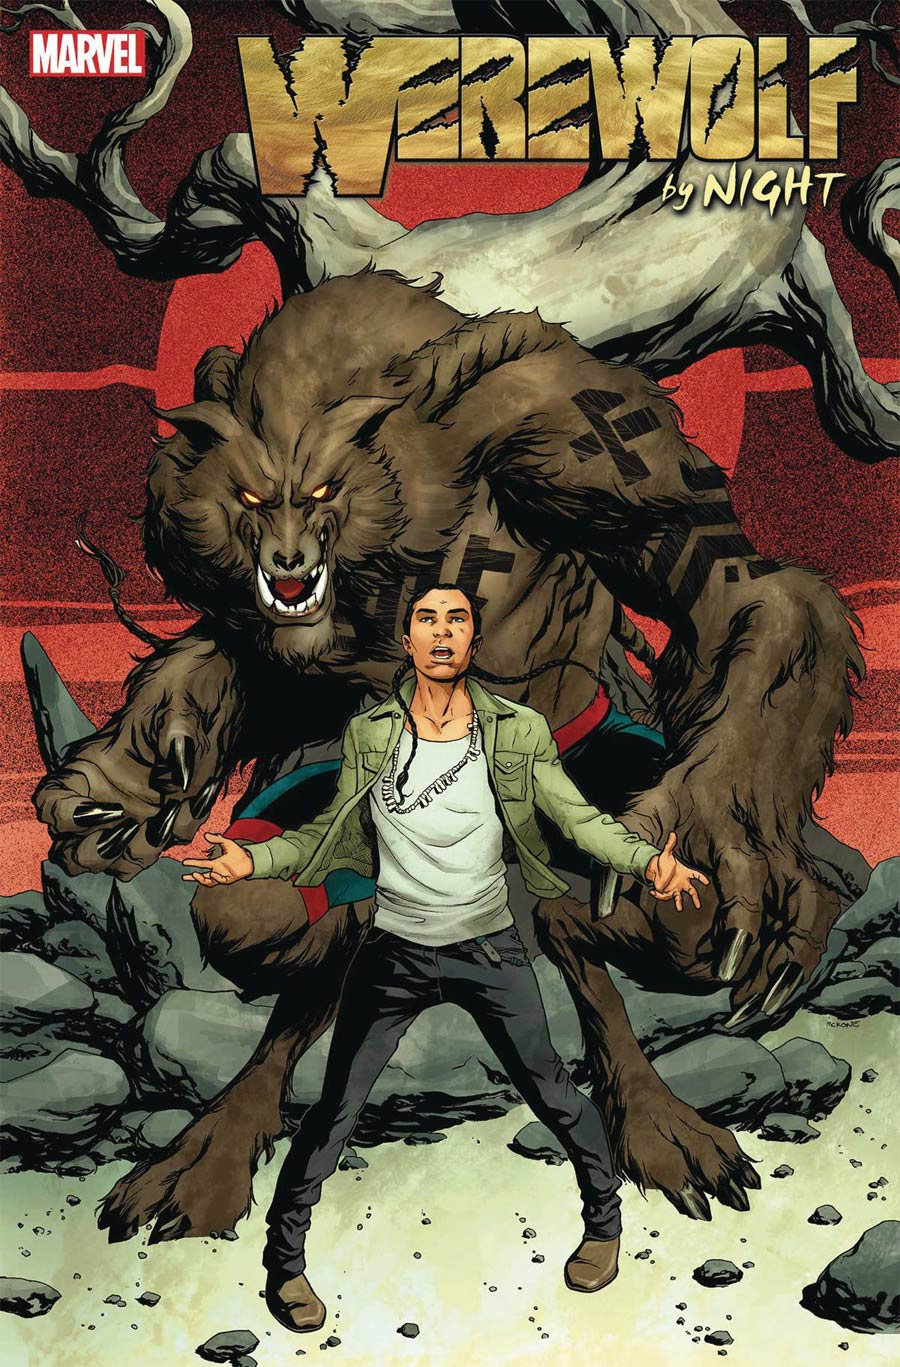 Werewolf By Night Vol 3 #1 Cover A Regular Mike McKone Cover